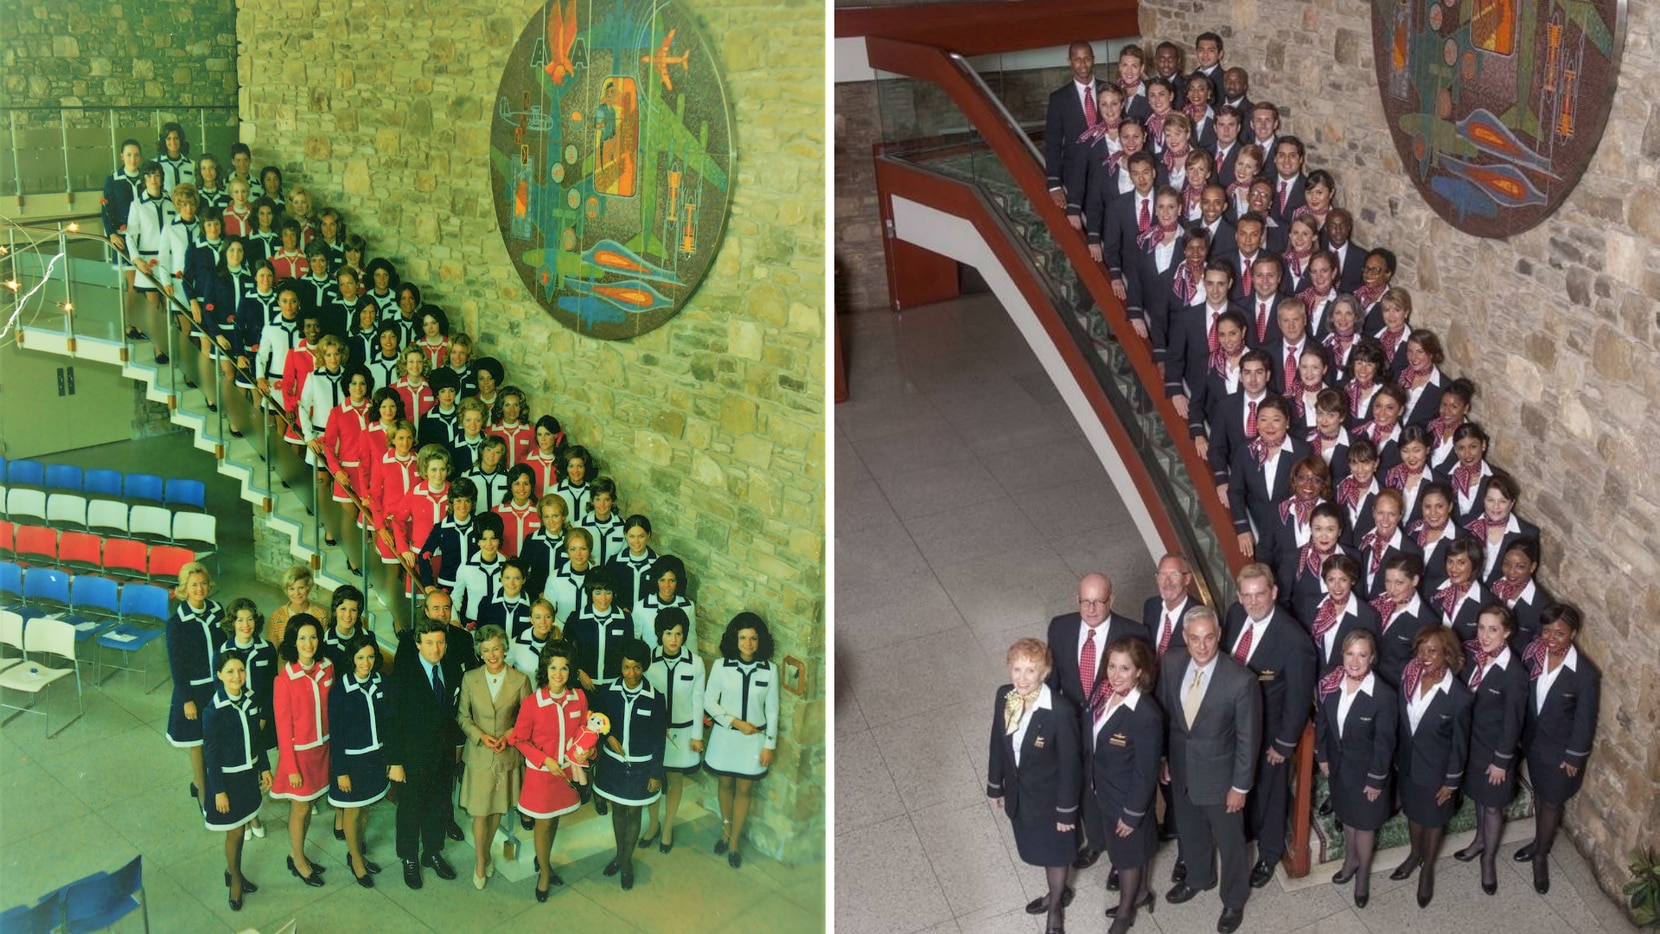 At left, American Airlines flight attendants graduating in 1972 posed for a photo on the staircase at the Stewardess College. At right, an American Airlines graduating class of flight attendants posed for a photo in 2014.